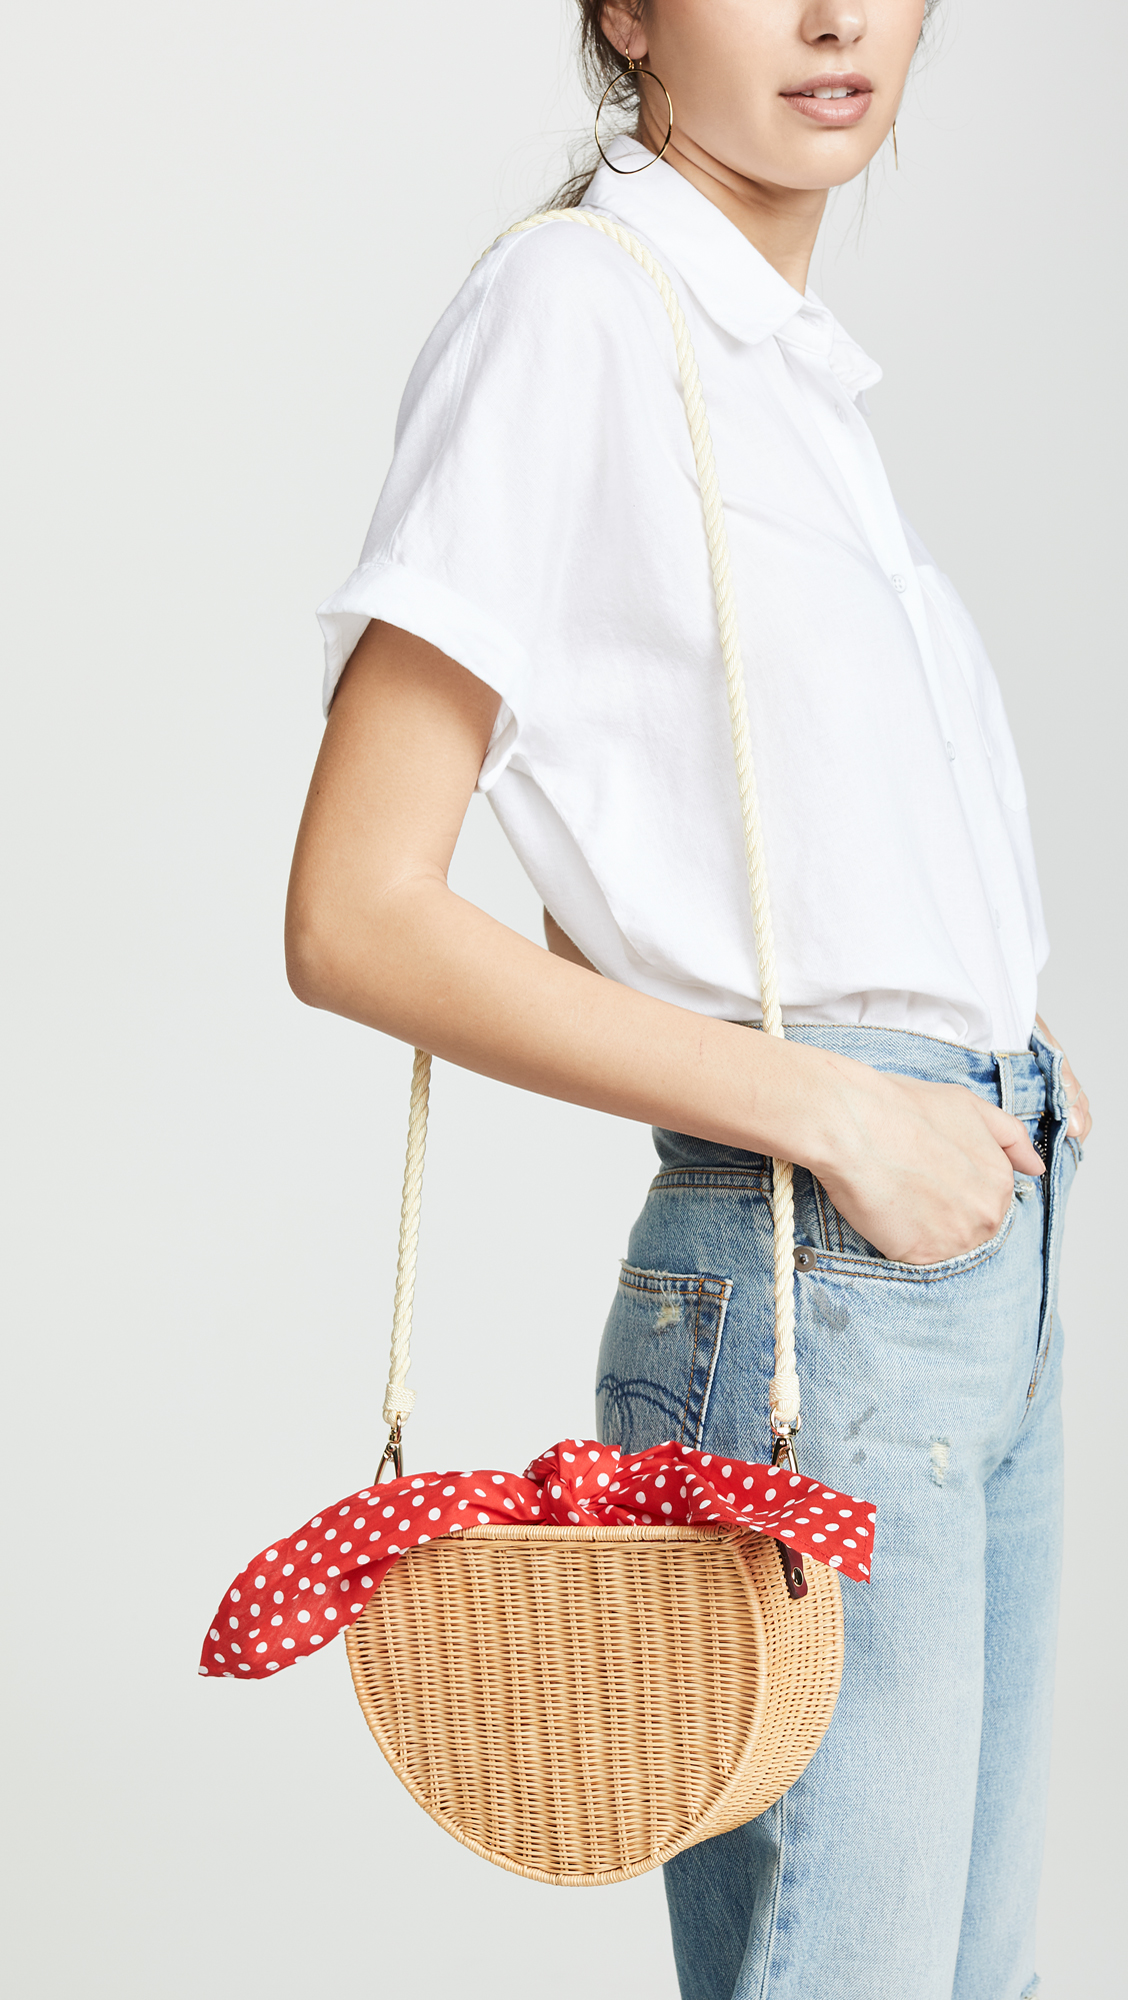 Red Polka Dot Wicker Bag